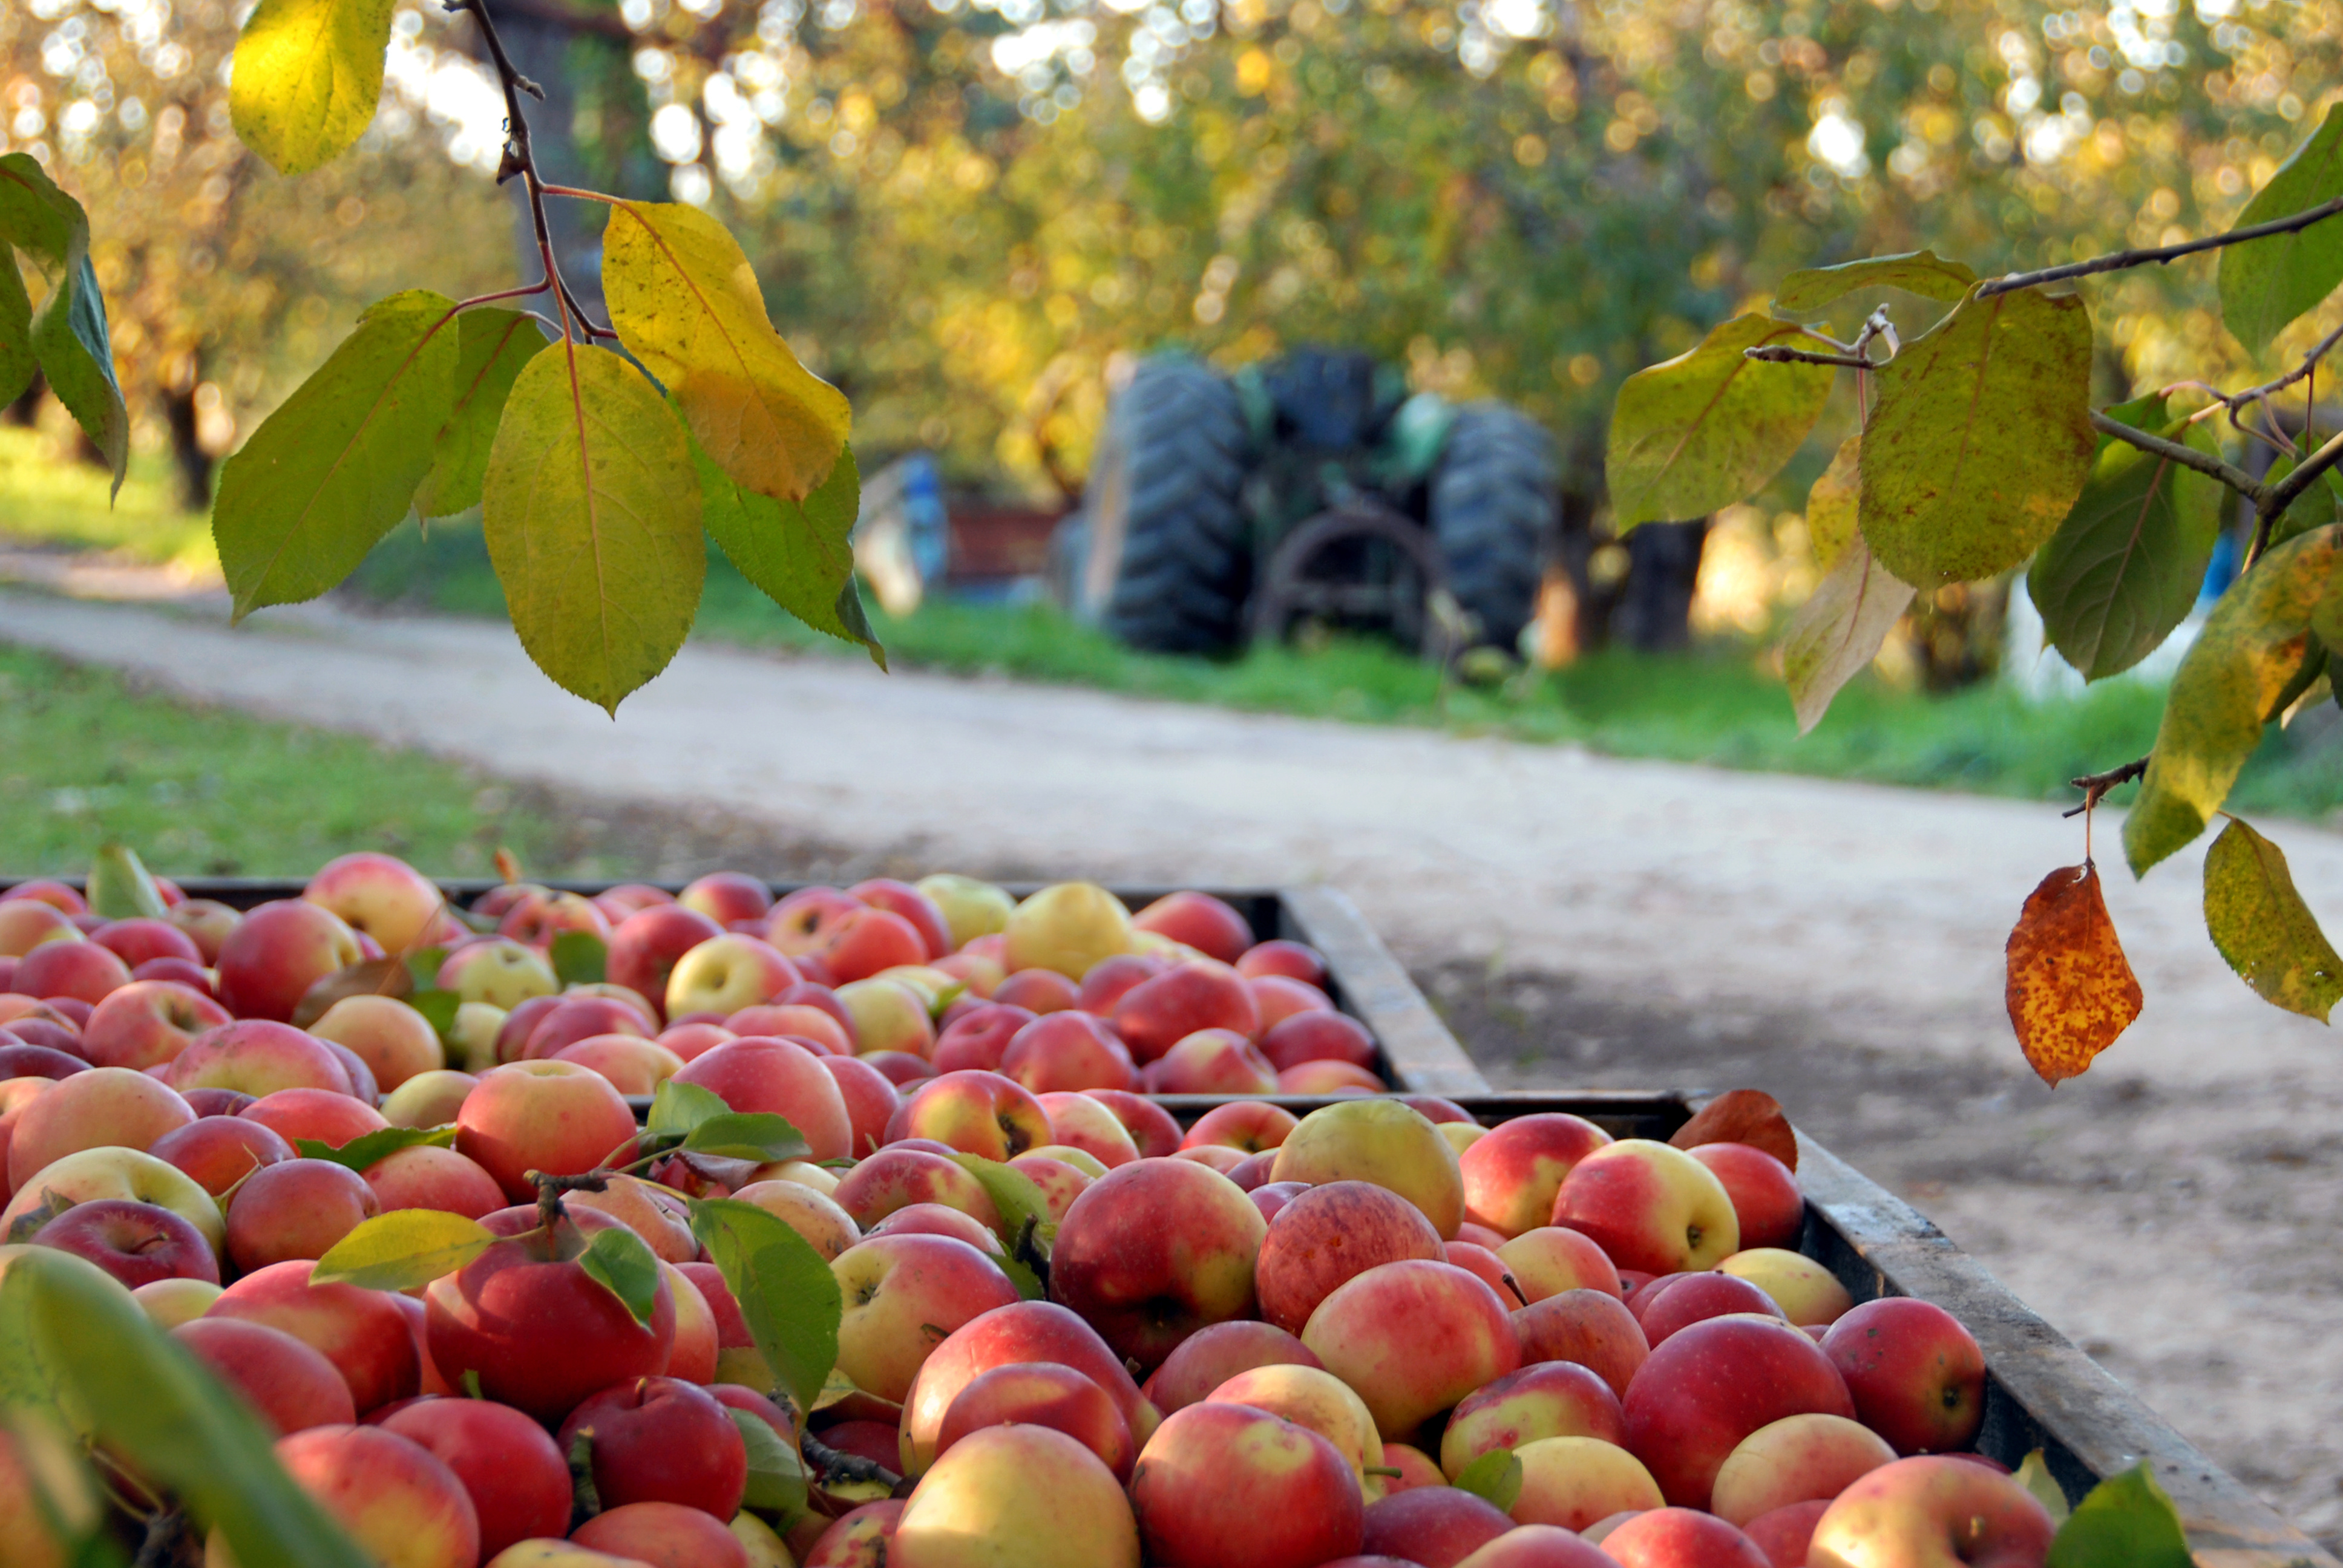 APPLES – Why You Should Always Buy ORGANIC